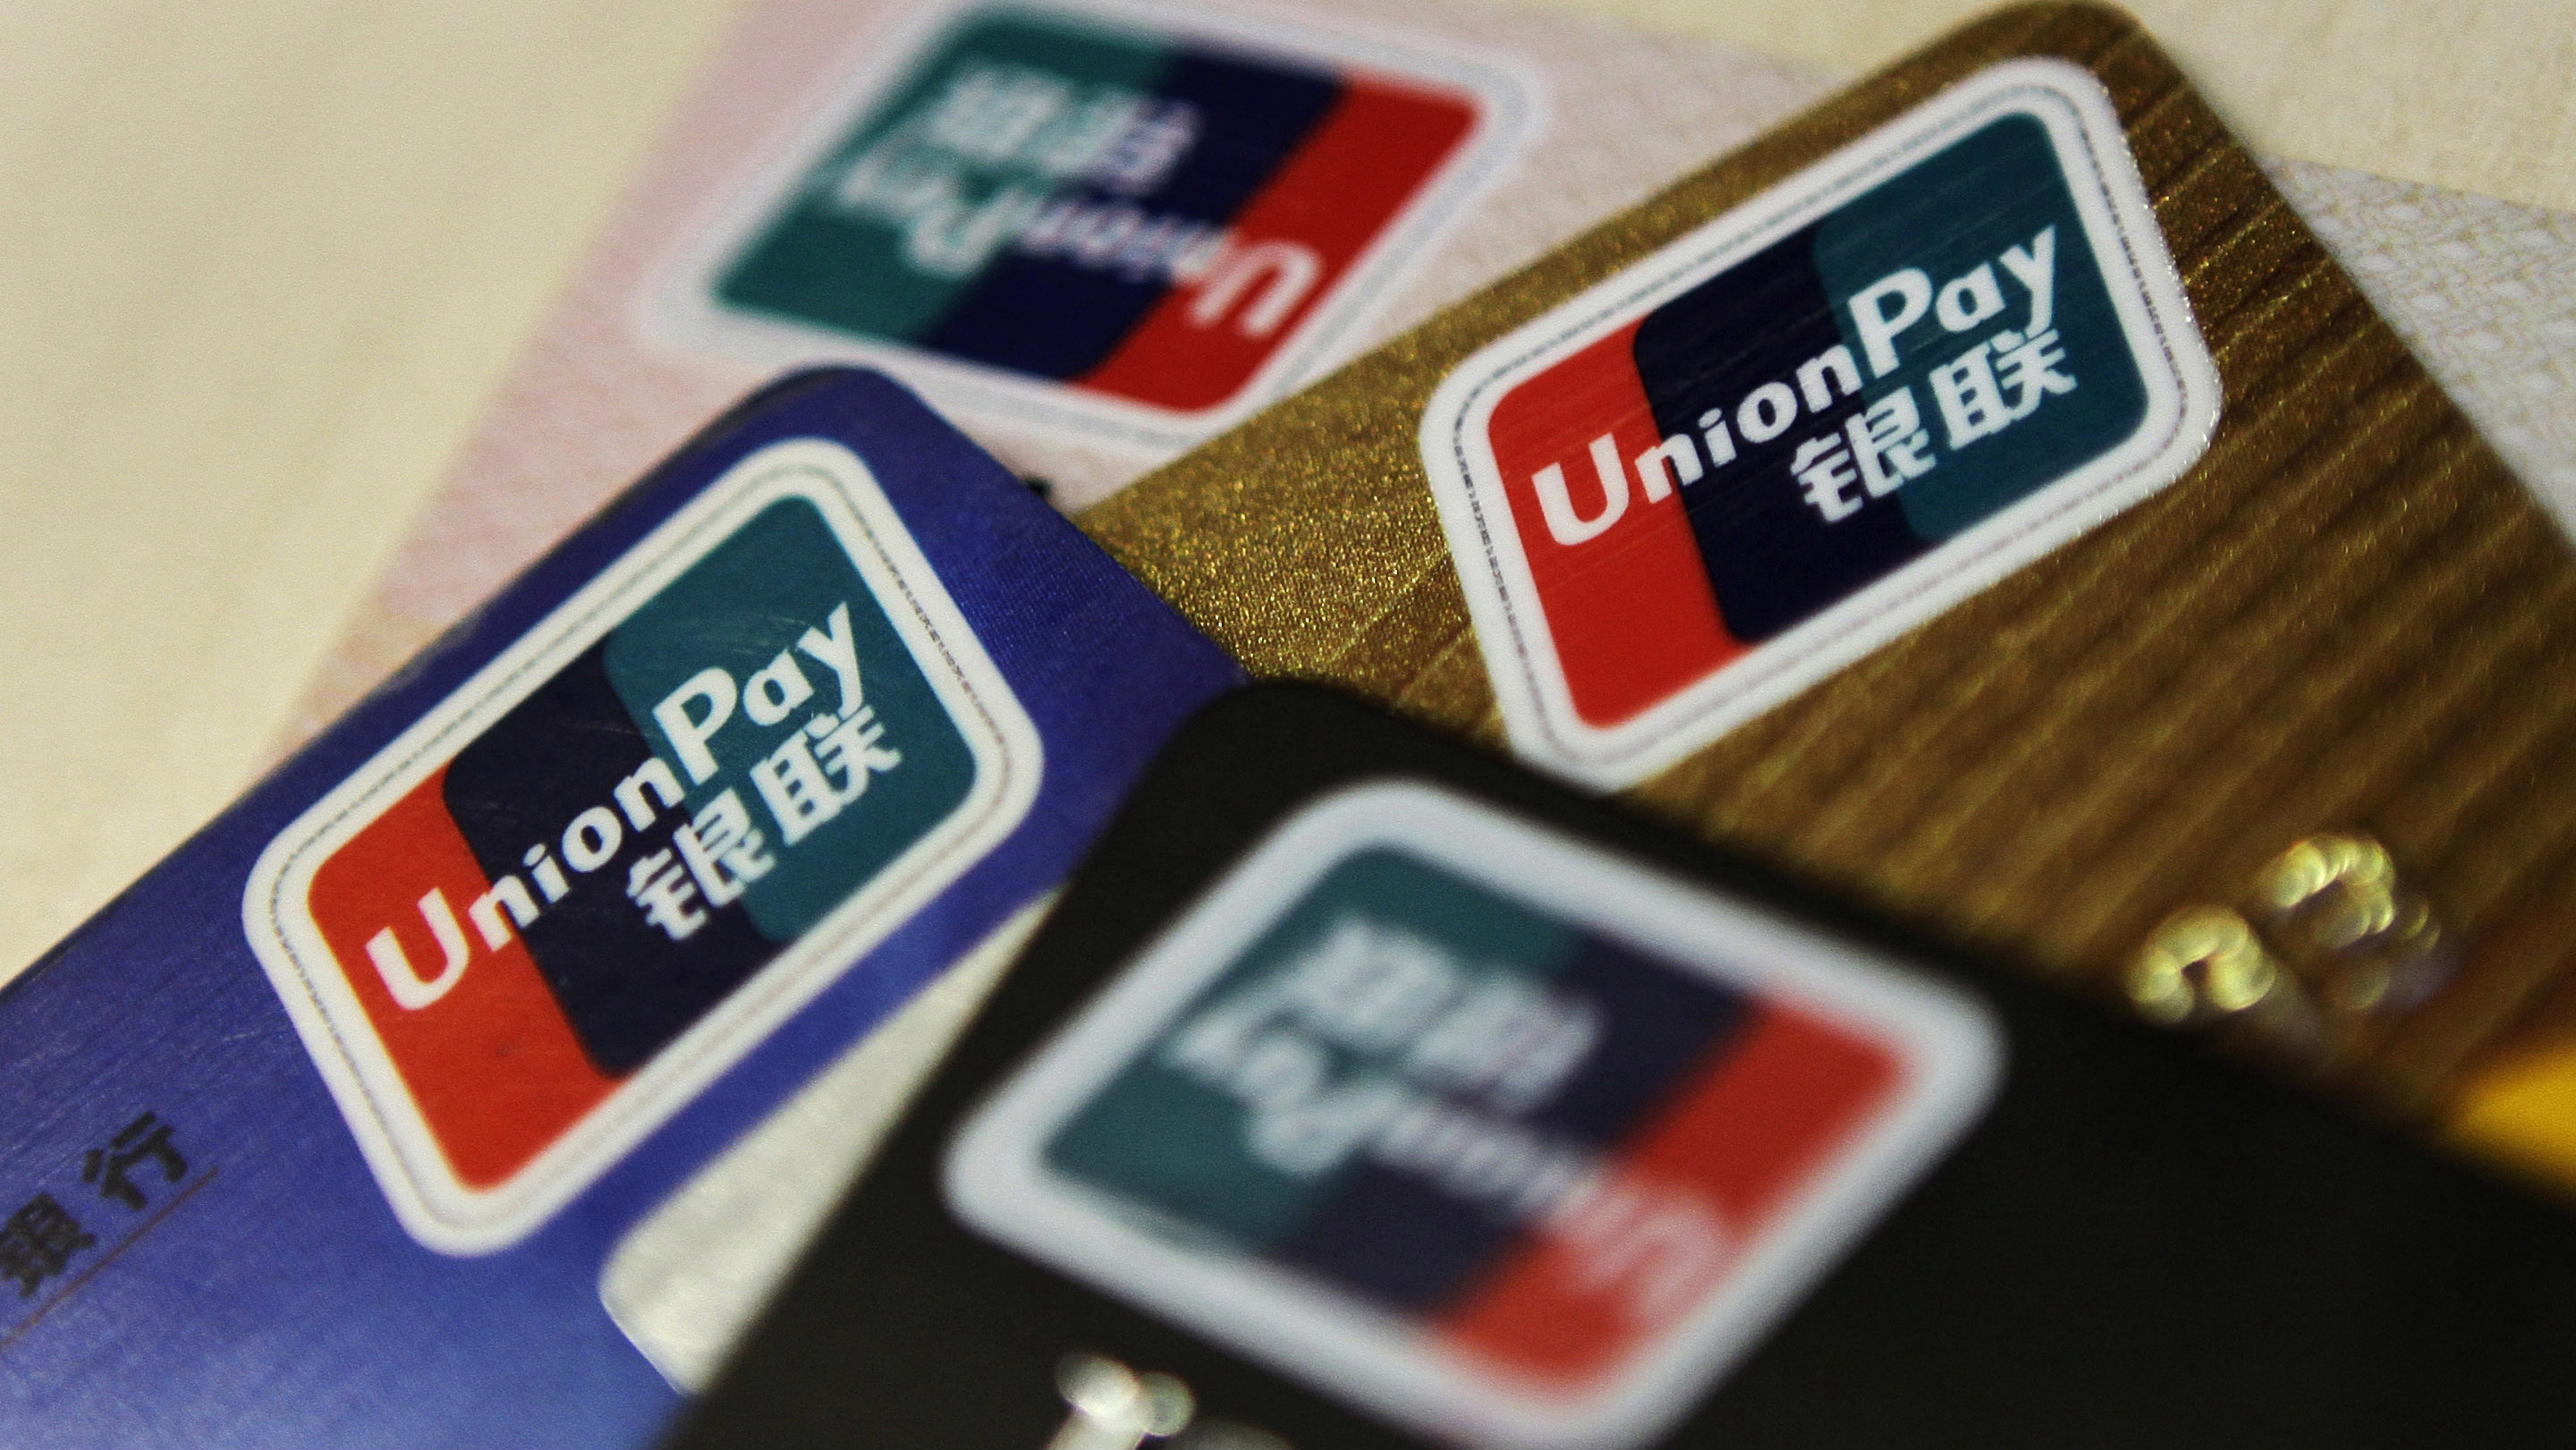 Logos of China UnionPay are seen on bank cards in this photo illustration taken in Beijing December 5, 2013. Picture taken December 5, 2013. To match Special Report CHINA-UNIONPAY/ REUTERS/Barry Huang (CHINA - Tags: POLITICS BUSINESS LOGO)